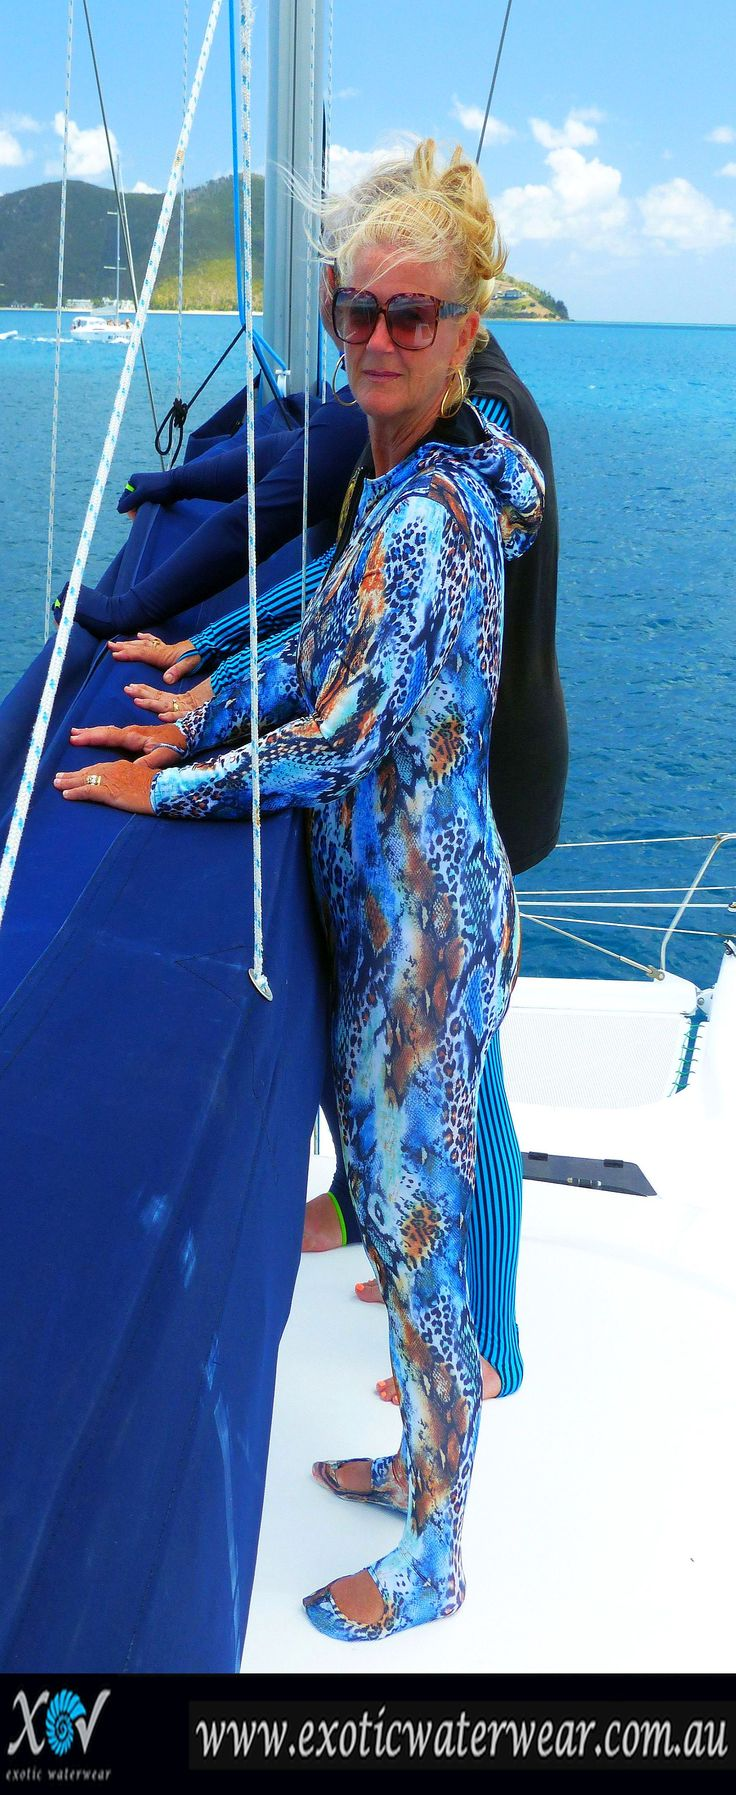 super sunprotection for sailing, the ultimate in underwaterwear. www.exoticwaterwear.com.au